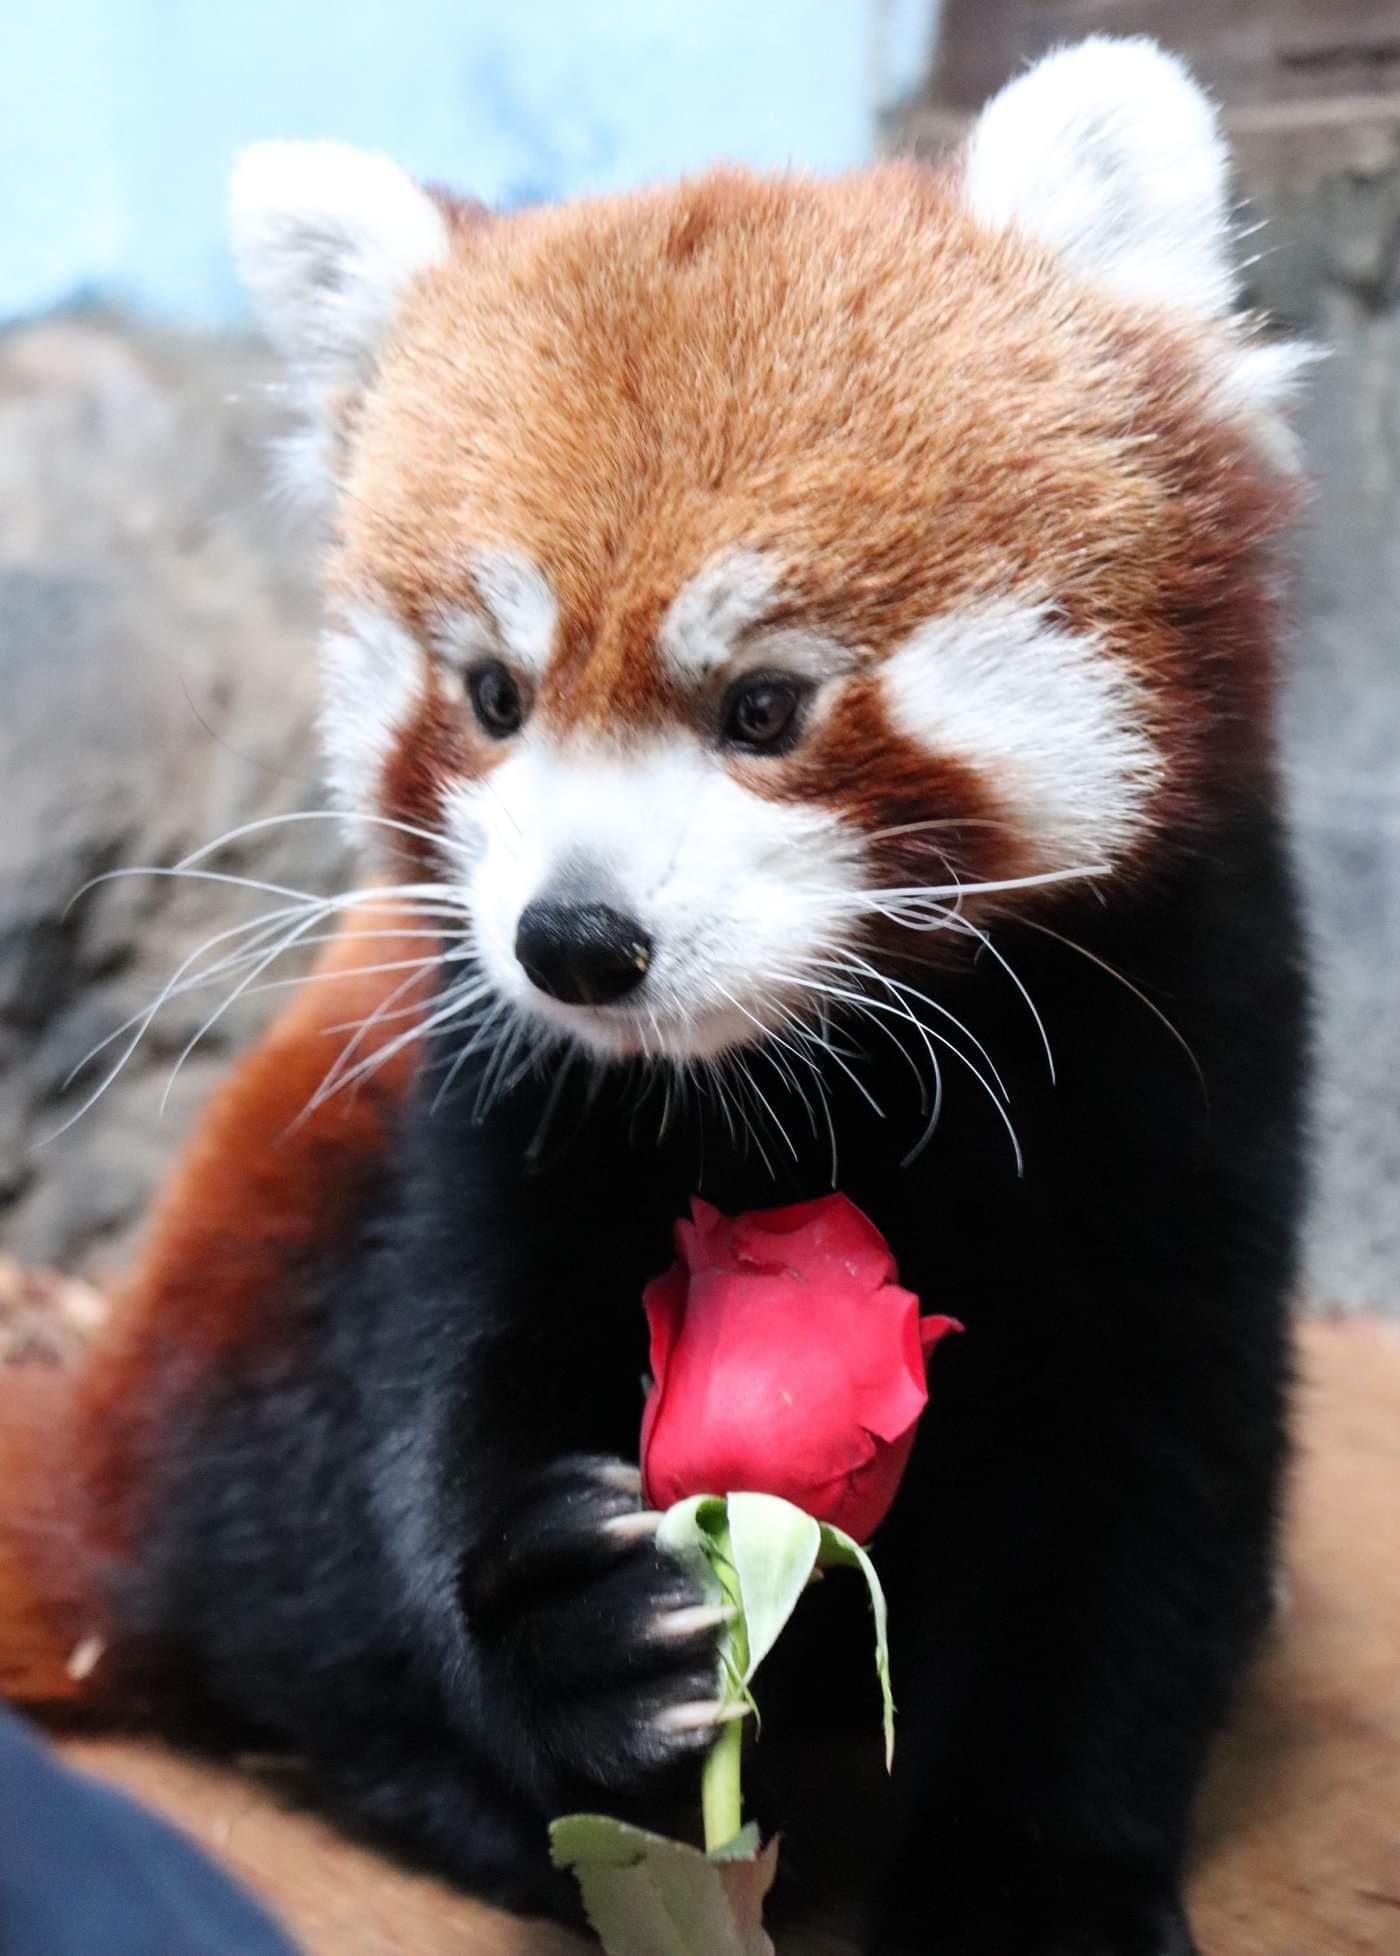 Please Follow Iloveredpandas My Local Zoo Posted Pictures Of Their Special Valentine S Day Enrichment And I Thought You G Red Panda Cute Animals Weird Animals